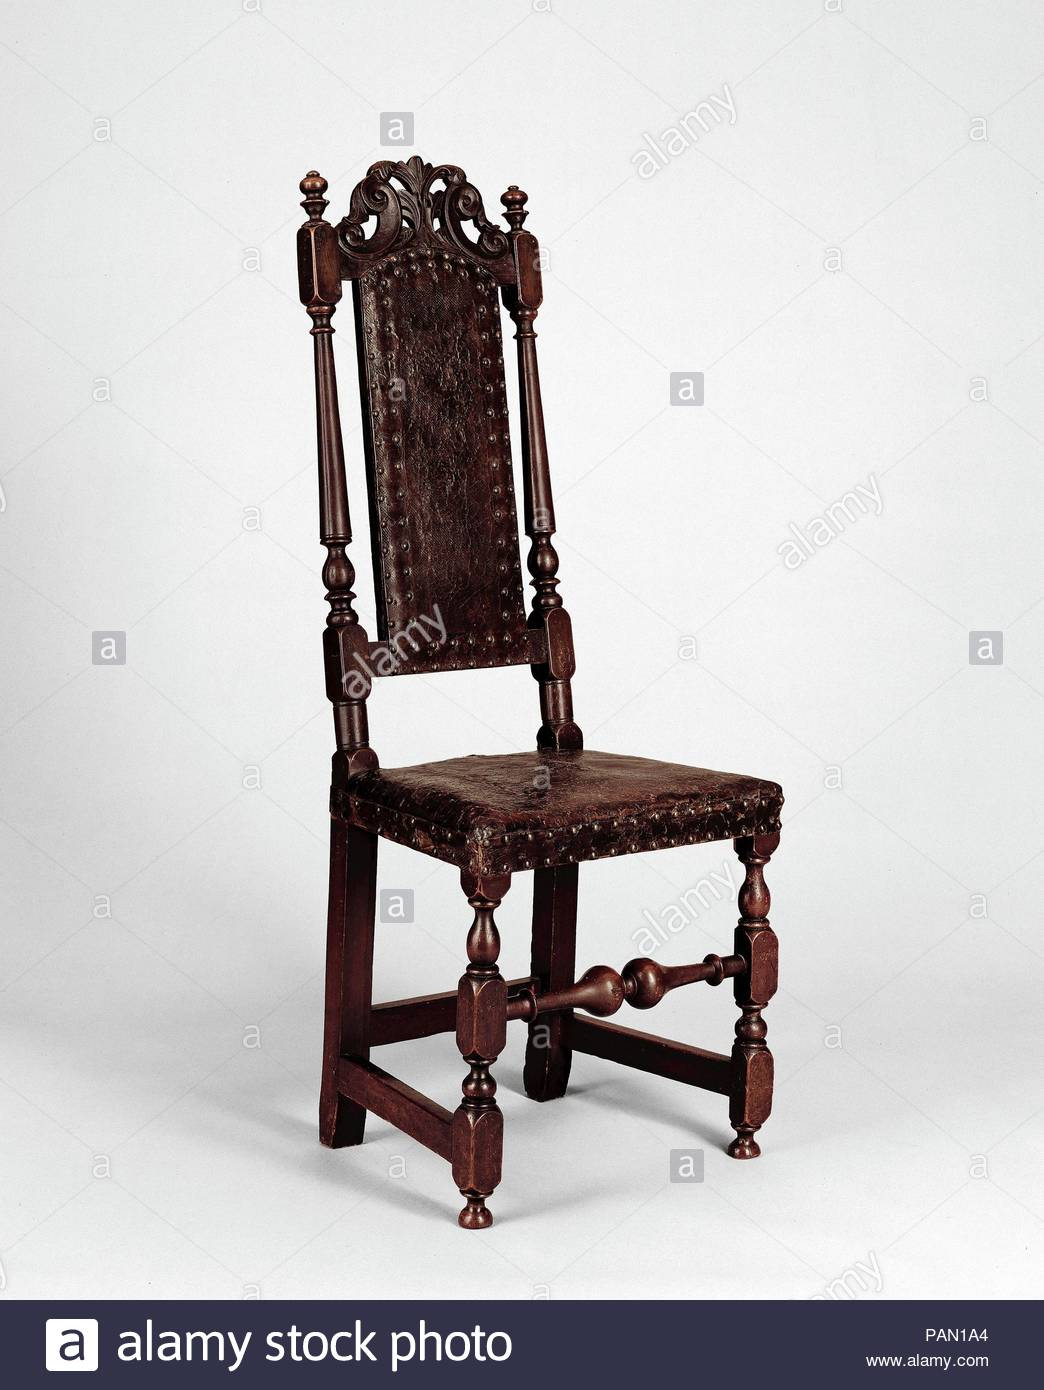 Crowned Chair Stock Photos & Crowned Chair Stock Images – Alamy With Newcombe Warm Brown Windsor Rocking Chairs (#12 of 20)